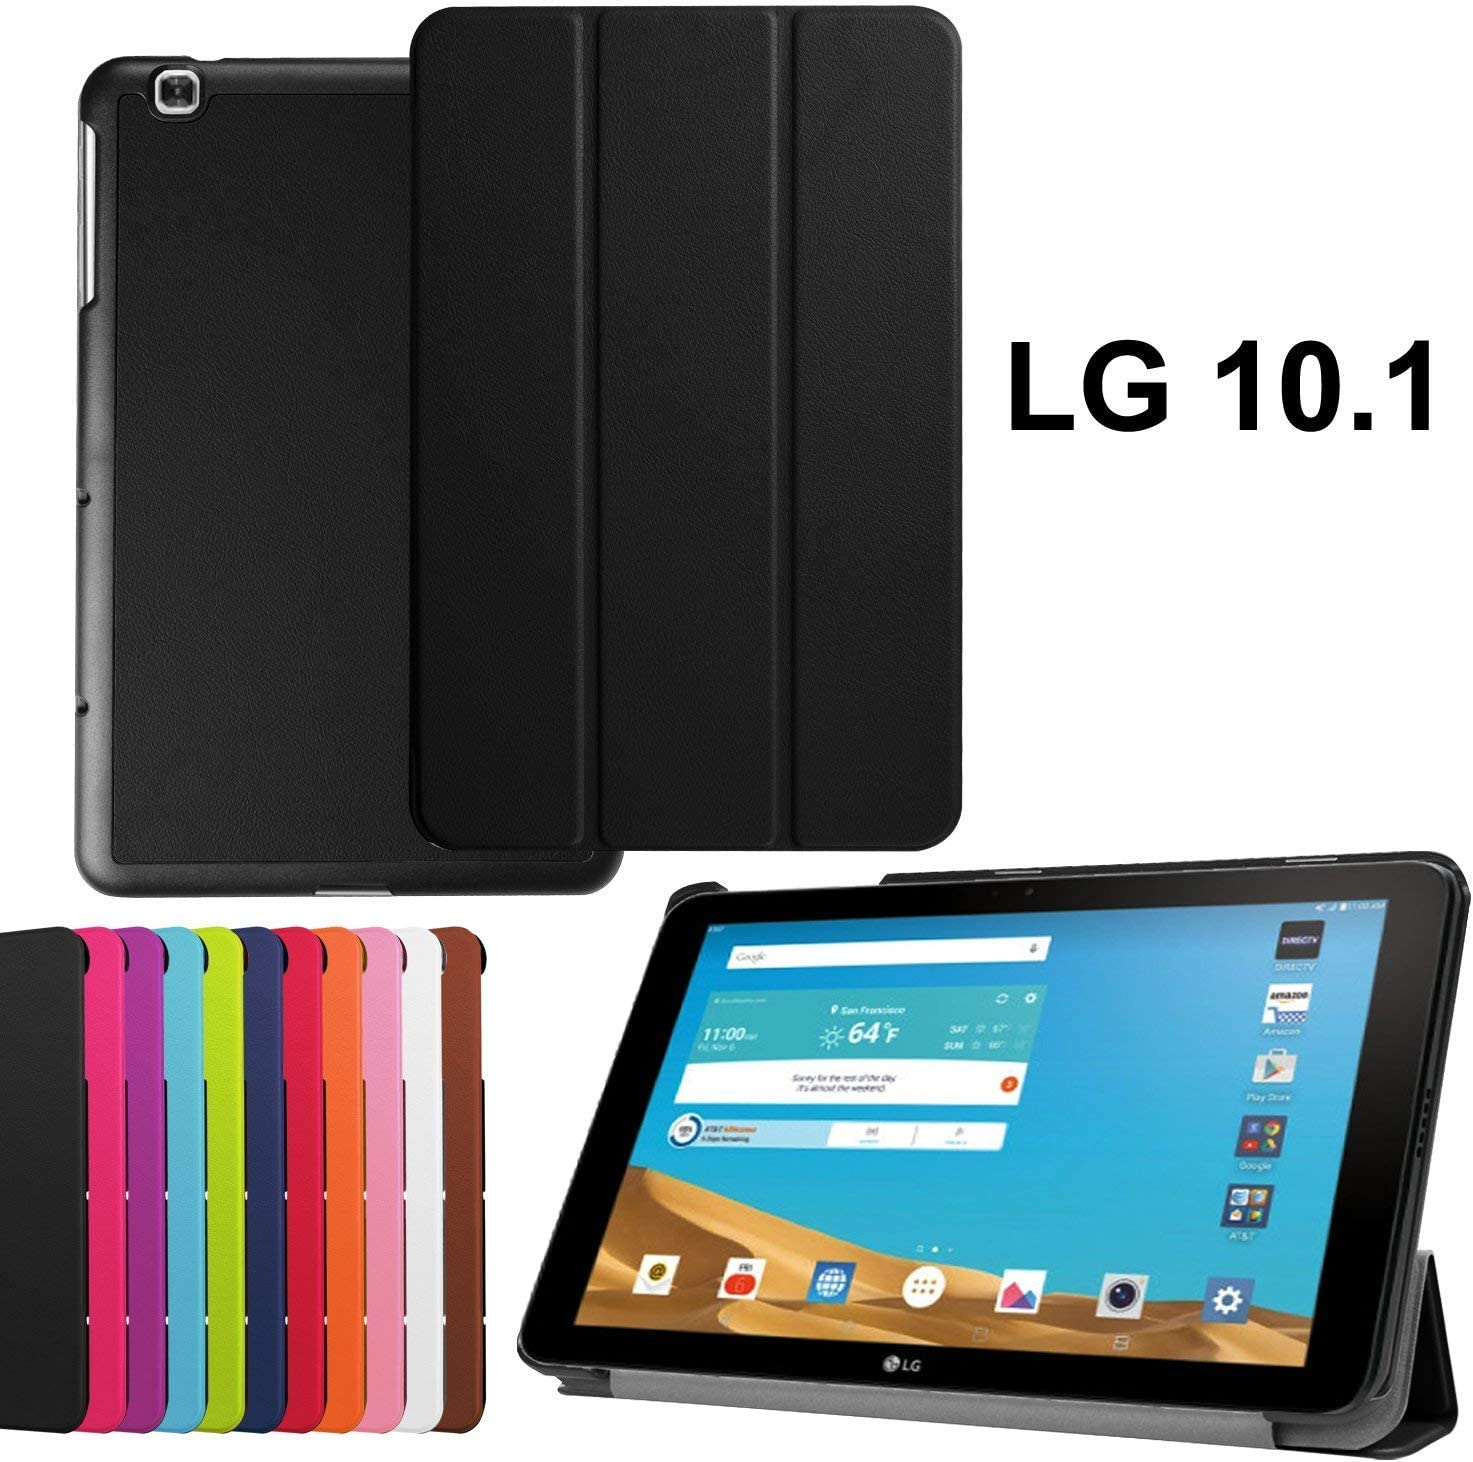 Asng LG G PAD X 10.1 Case - Ultra Slim Lightweight Standing Cover for LG G Pad 2 10.1 inch (V940) / LG G PAD X 10.1 Inch (4G LTE AT&T V930) Android ...